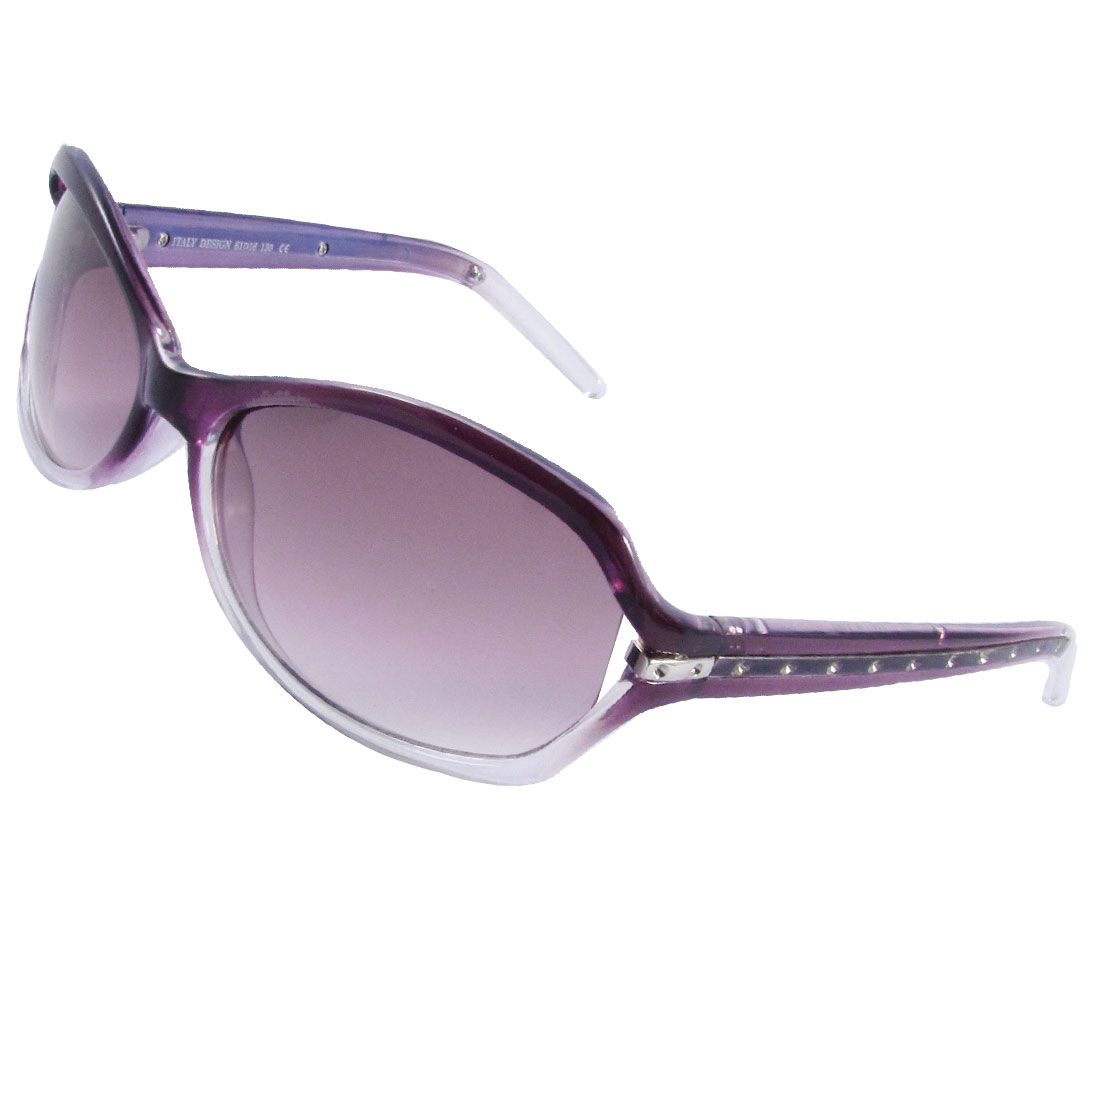 Tinted Lens Purple Clear Rimmed Wide Plastic Metal Arms Sunglasses for Ladies